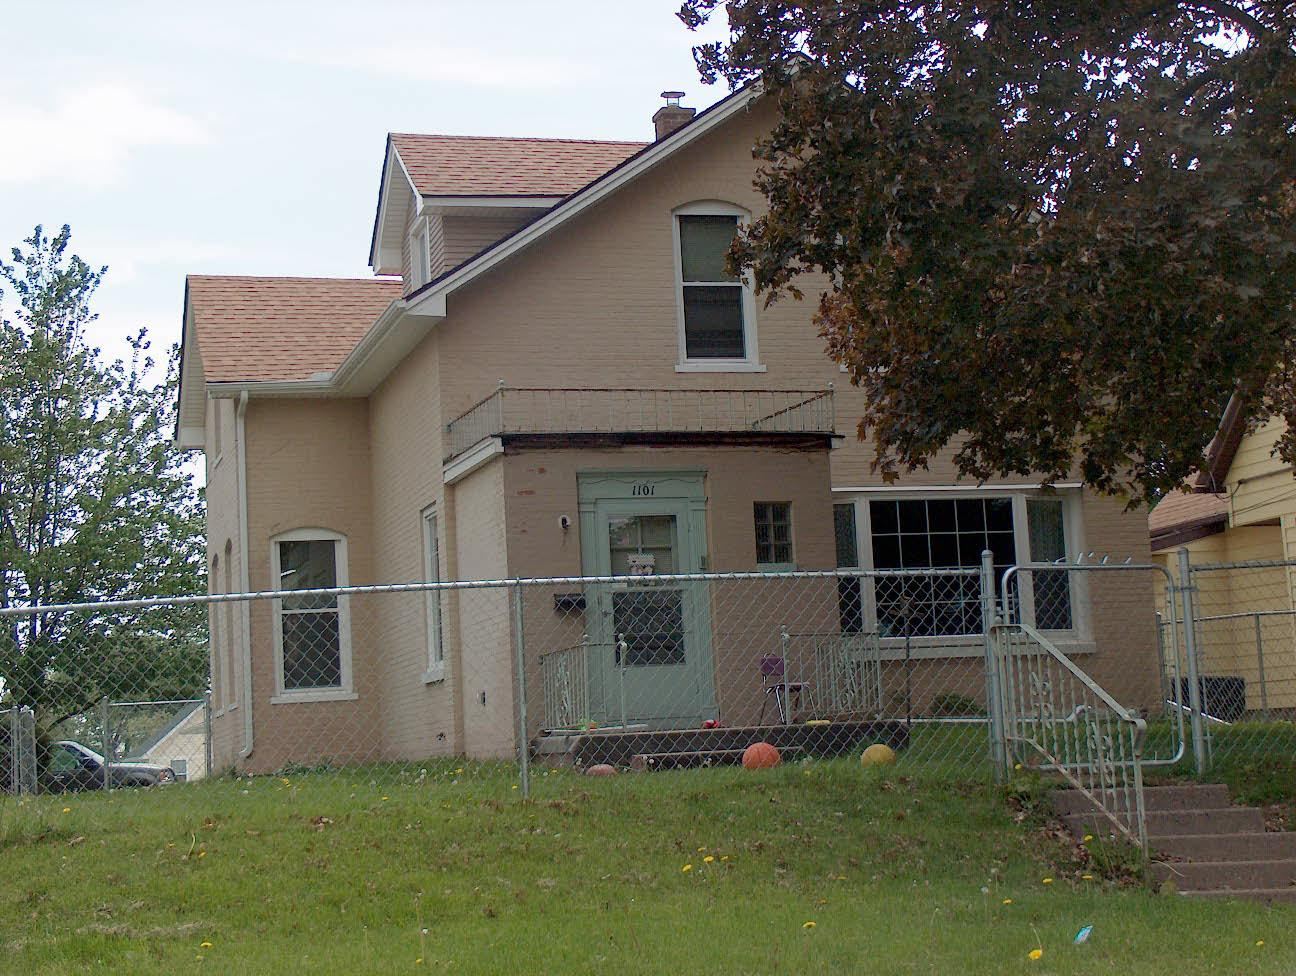 Davenport, Iowa IA For Sale By Owner, Iowa FSBO Home in Davenport IA, W 13TH ST ForSaleByOwner